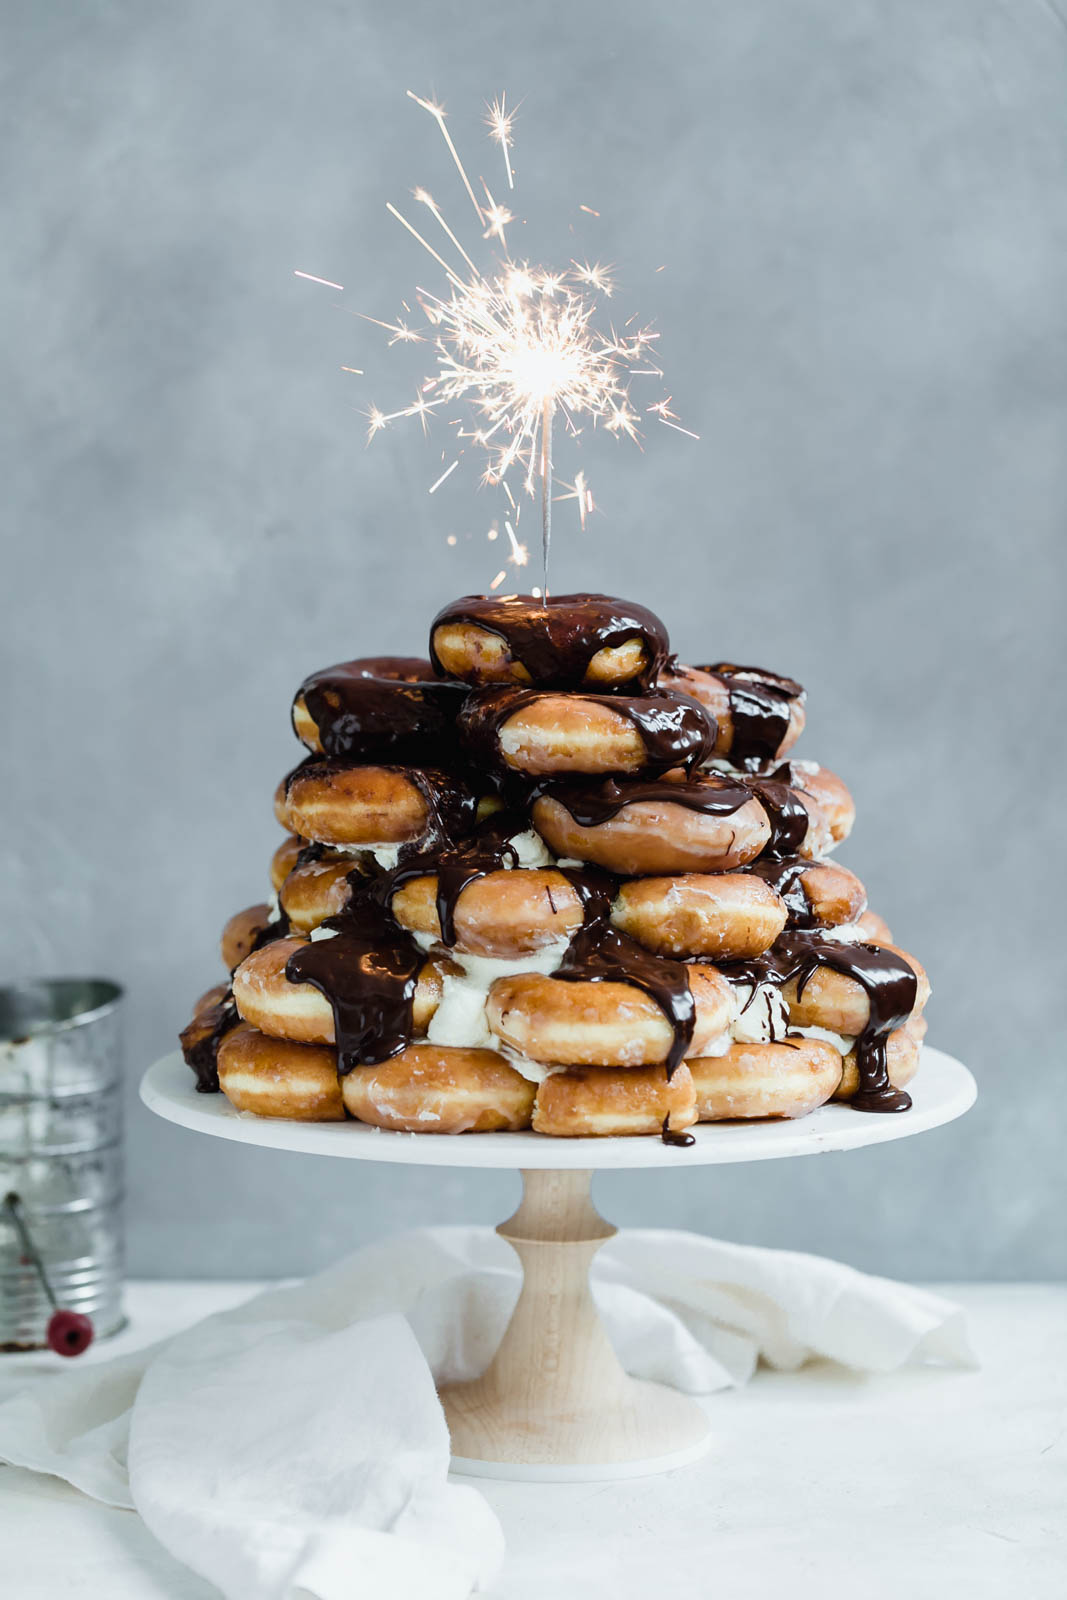 Absolutely Epic Doughnut Cake